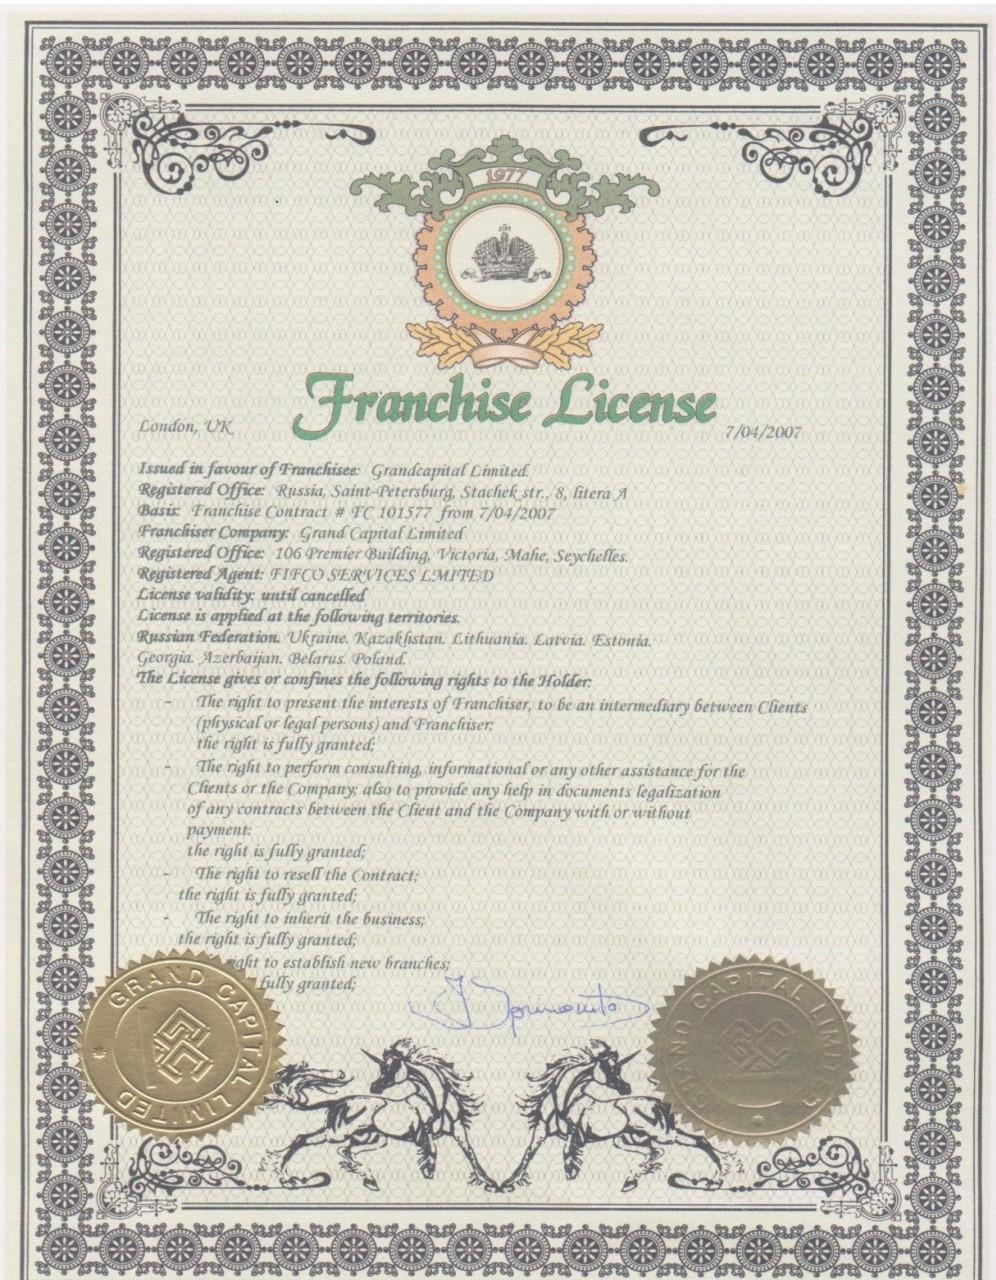 2.7. Franchise License Grand Capital Ltd.